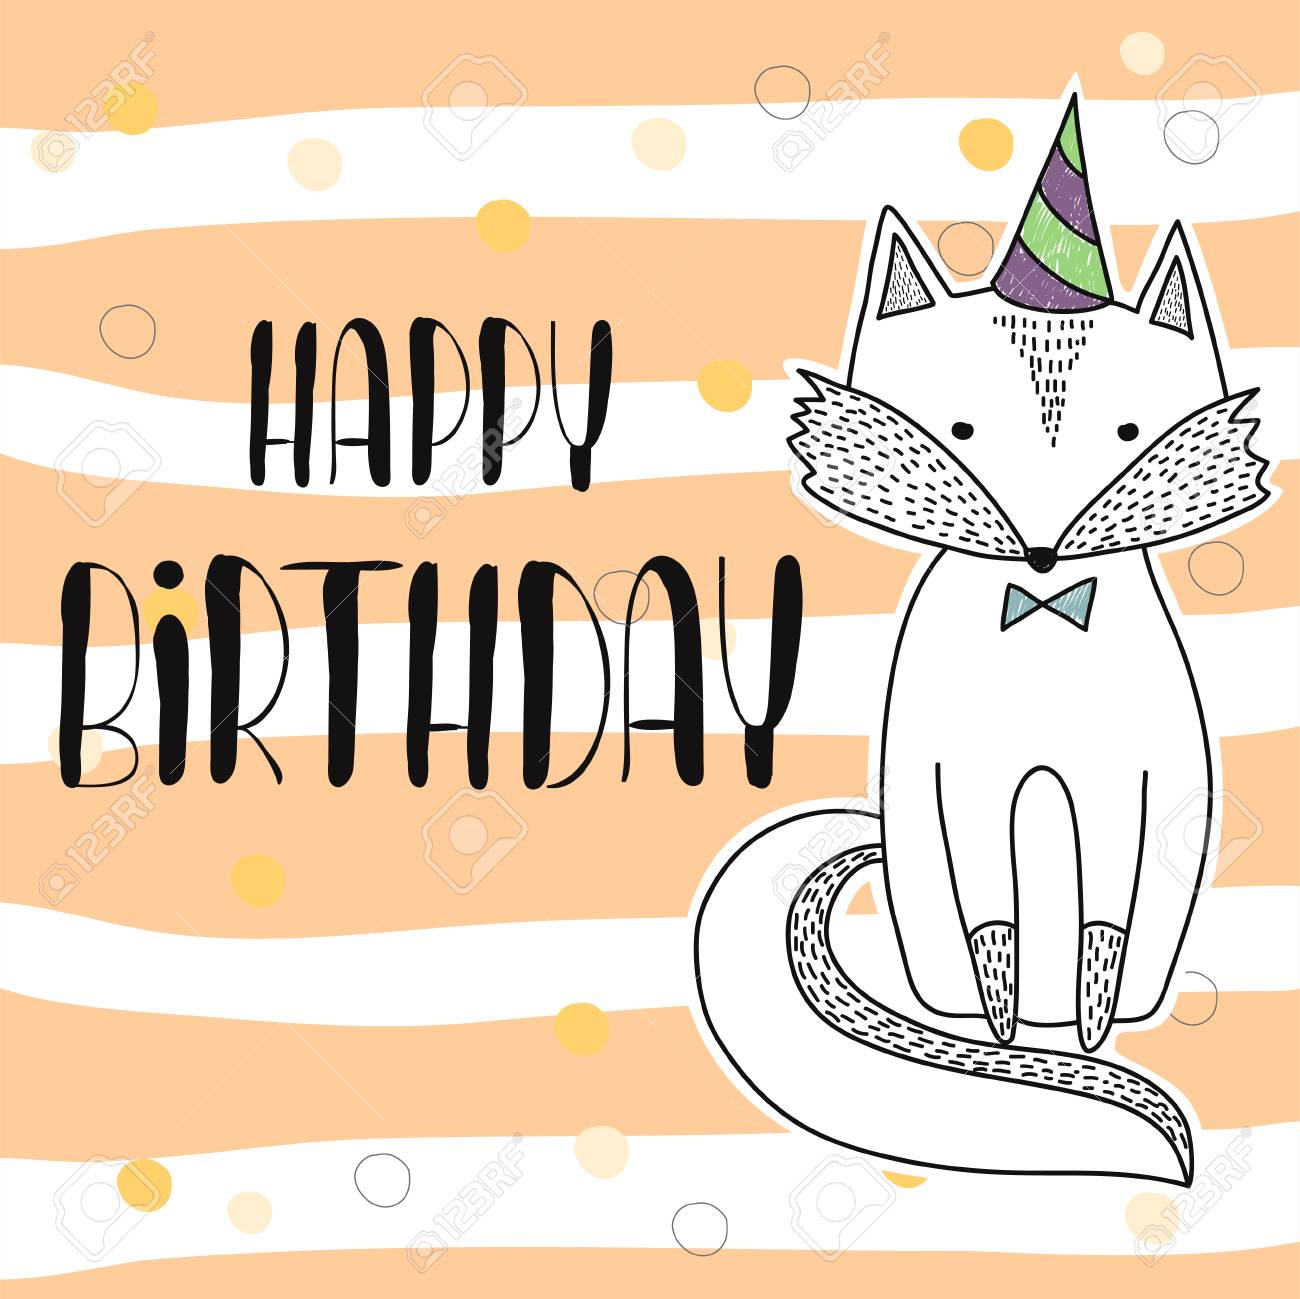 Happy Birthday Poster Hand Drawn Cute Little Fox Children S Royalty Free Cliparts Vectors And Stock Illustration Image 82426004